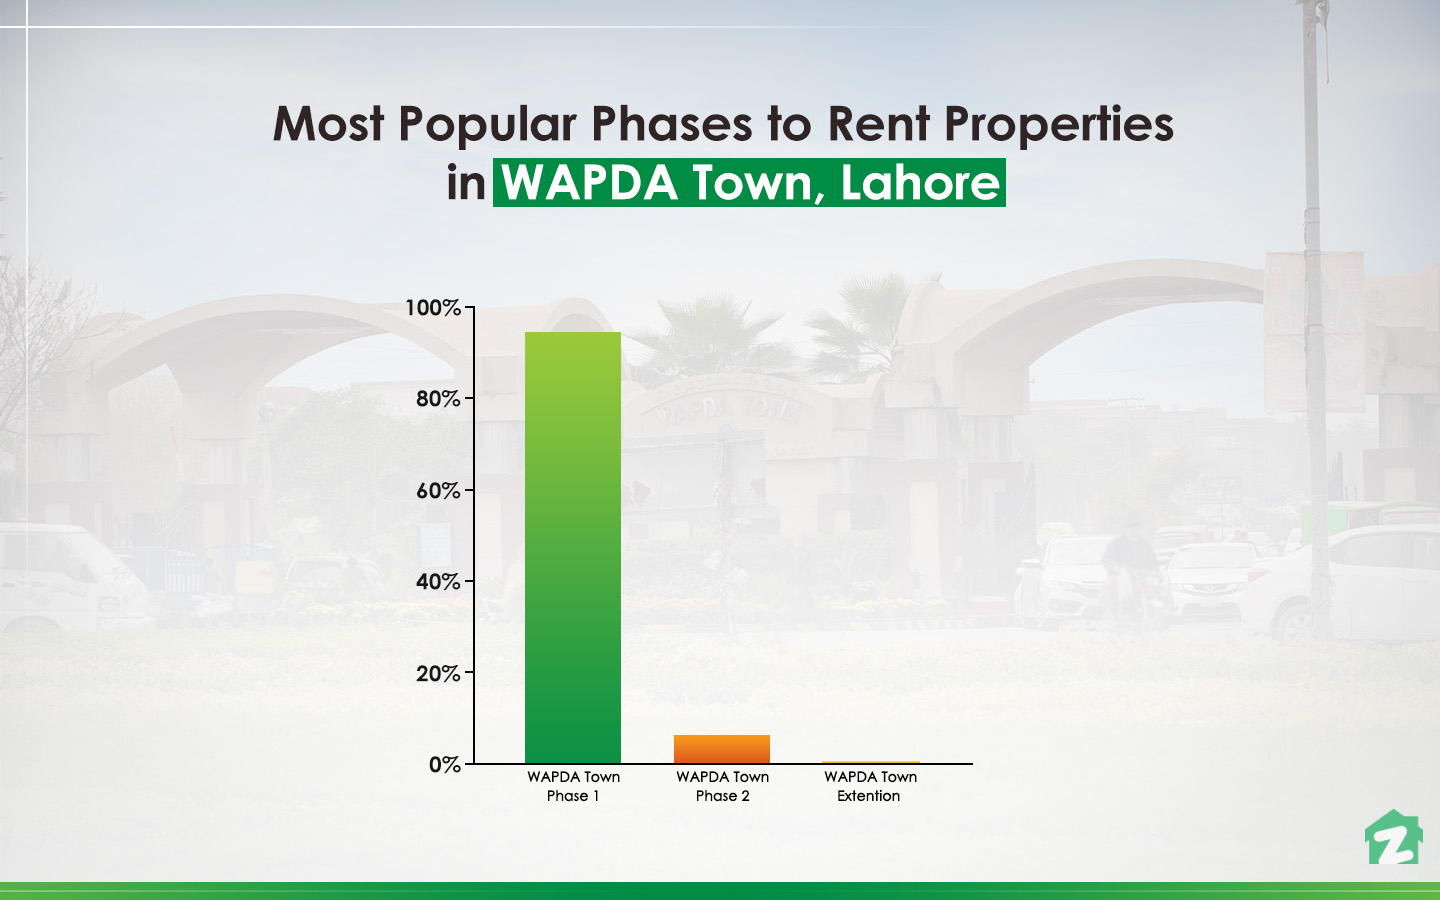 Most popular phases to rent property in WAPDA Town, Lahore